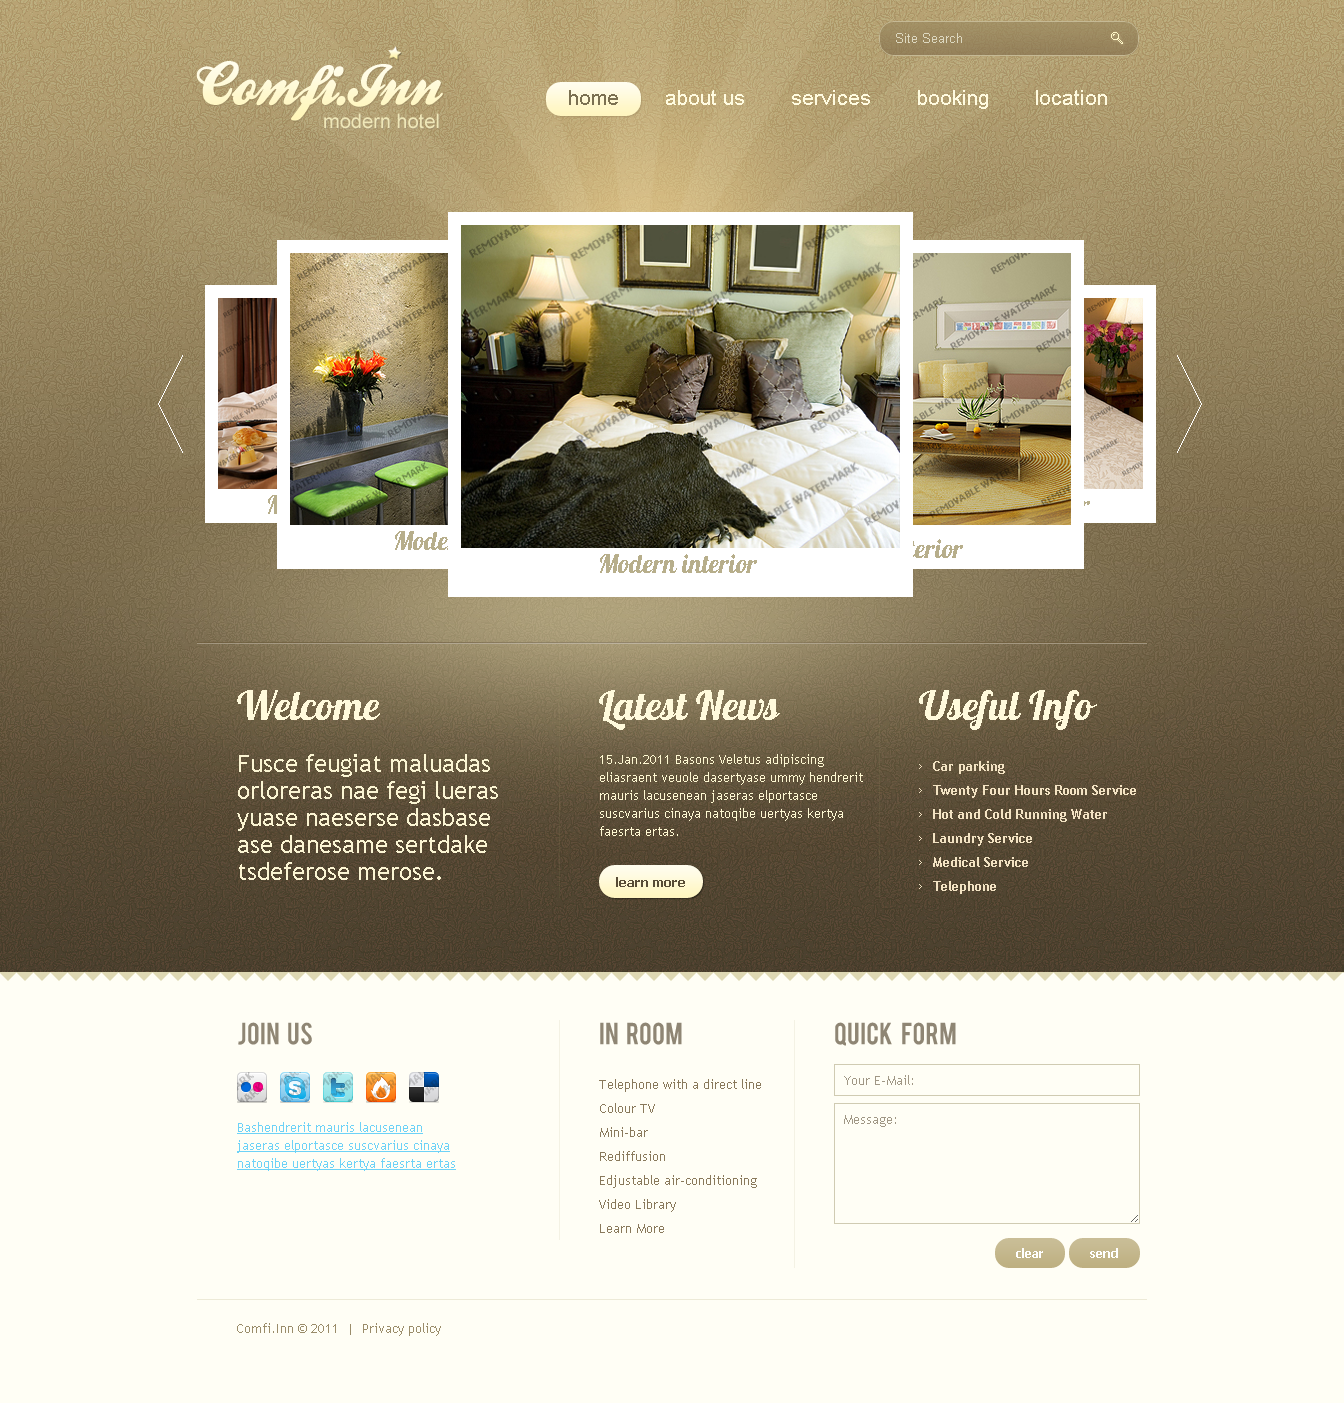 motel accommodation hotel web design idea 05png 1344 - Web Design Ideas